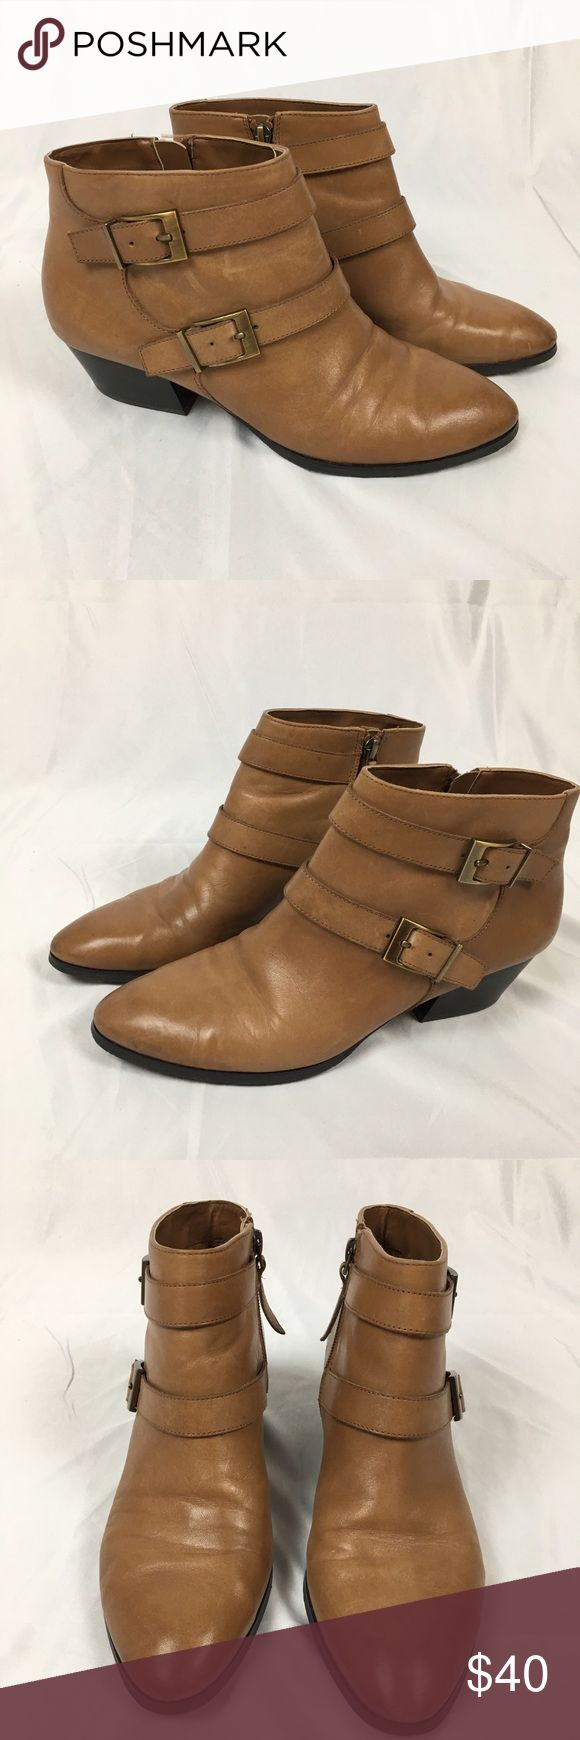 Franco Sarto Leather Ankle Boots Tan Great condition Franco Sarto tan leather ankle boots with buckles and zipper. 2 inch heel. Size 8.5W Franco Sarto Shoes Ankle Boots & Booties